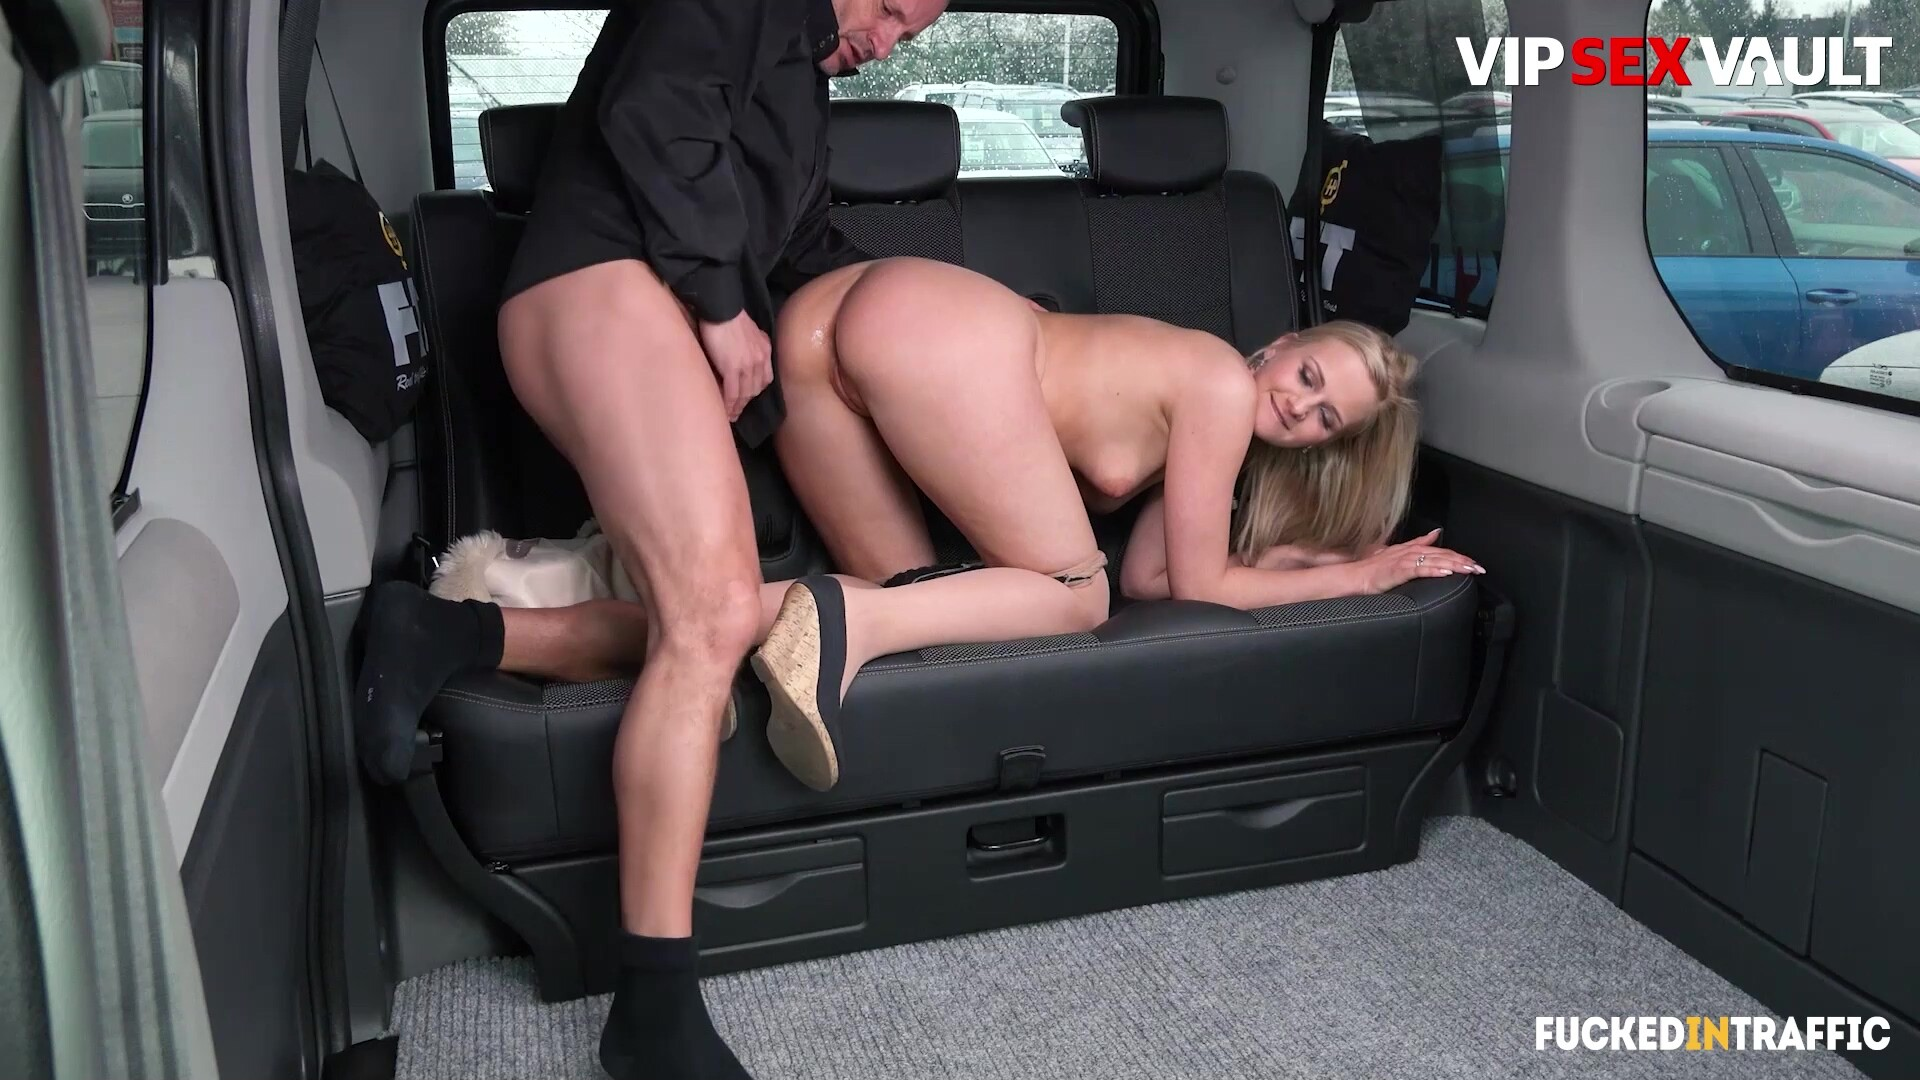 Katie Sky Kinky Blonde Rides Big Penis On Hot Taxi Ride